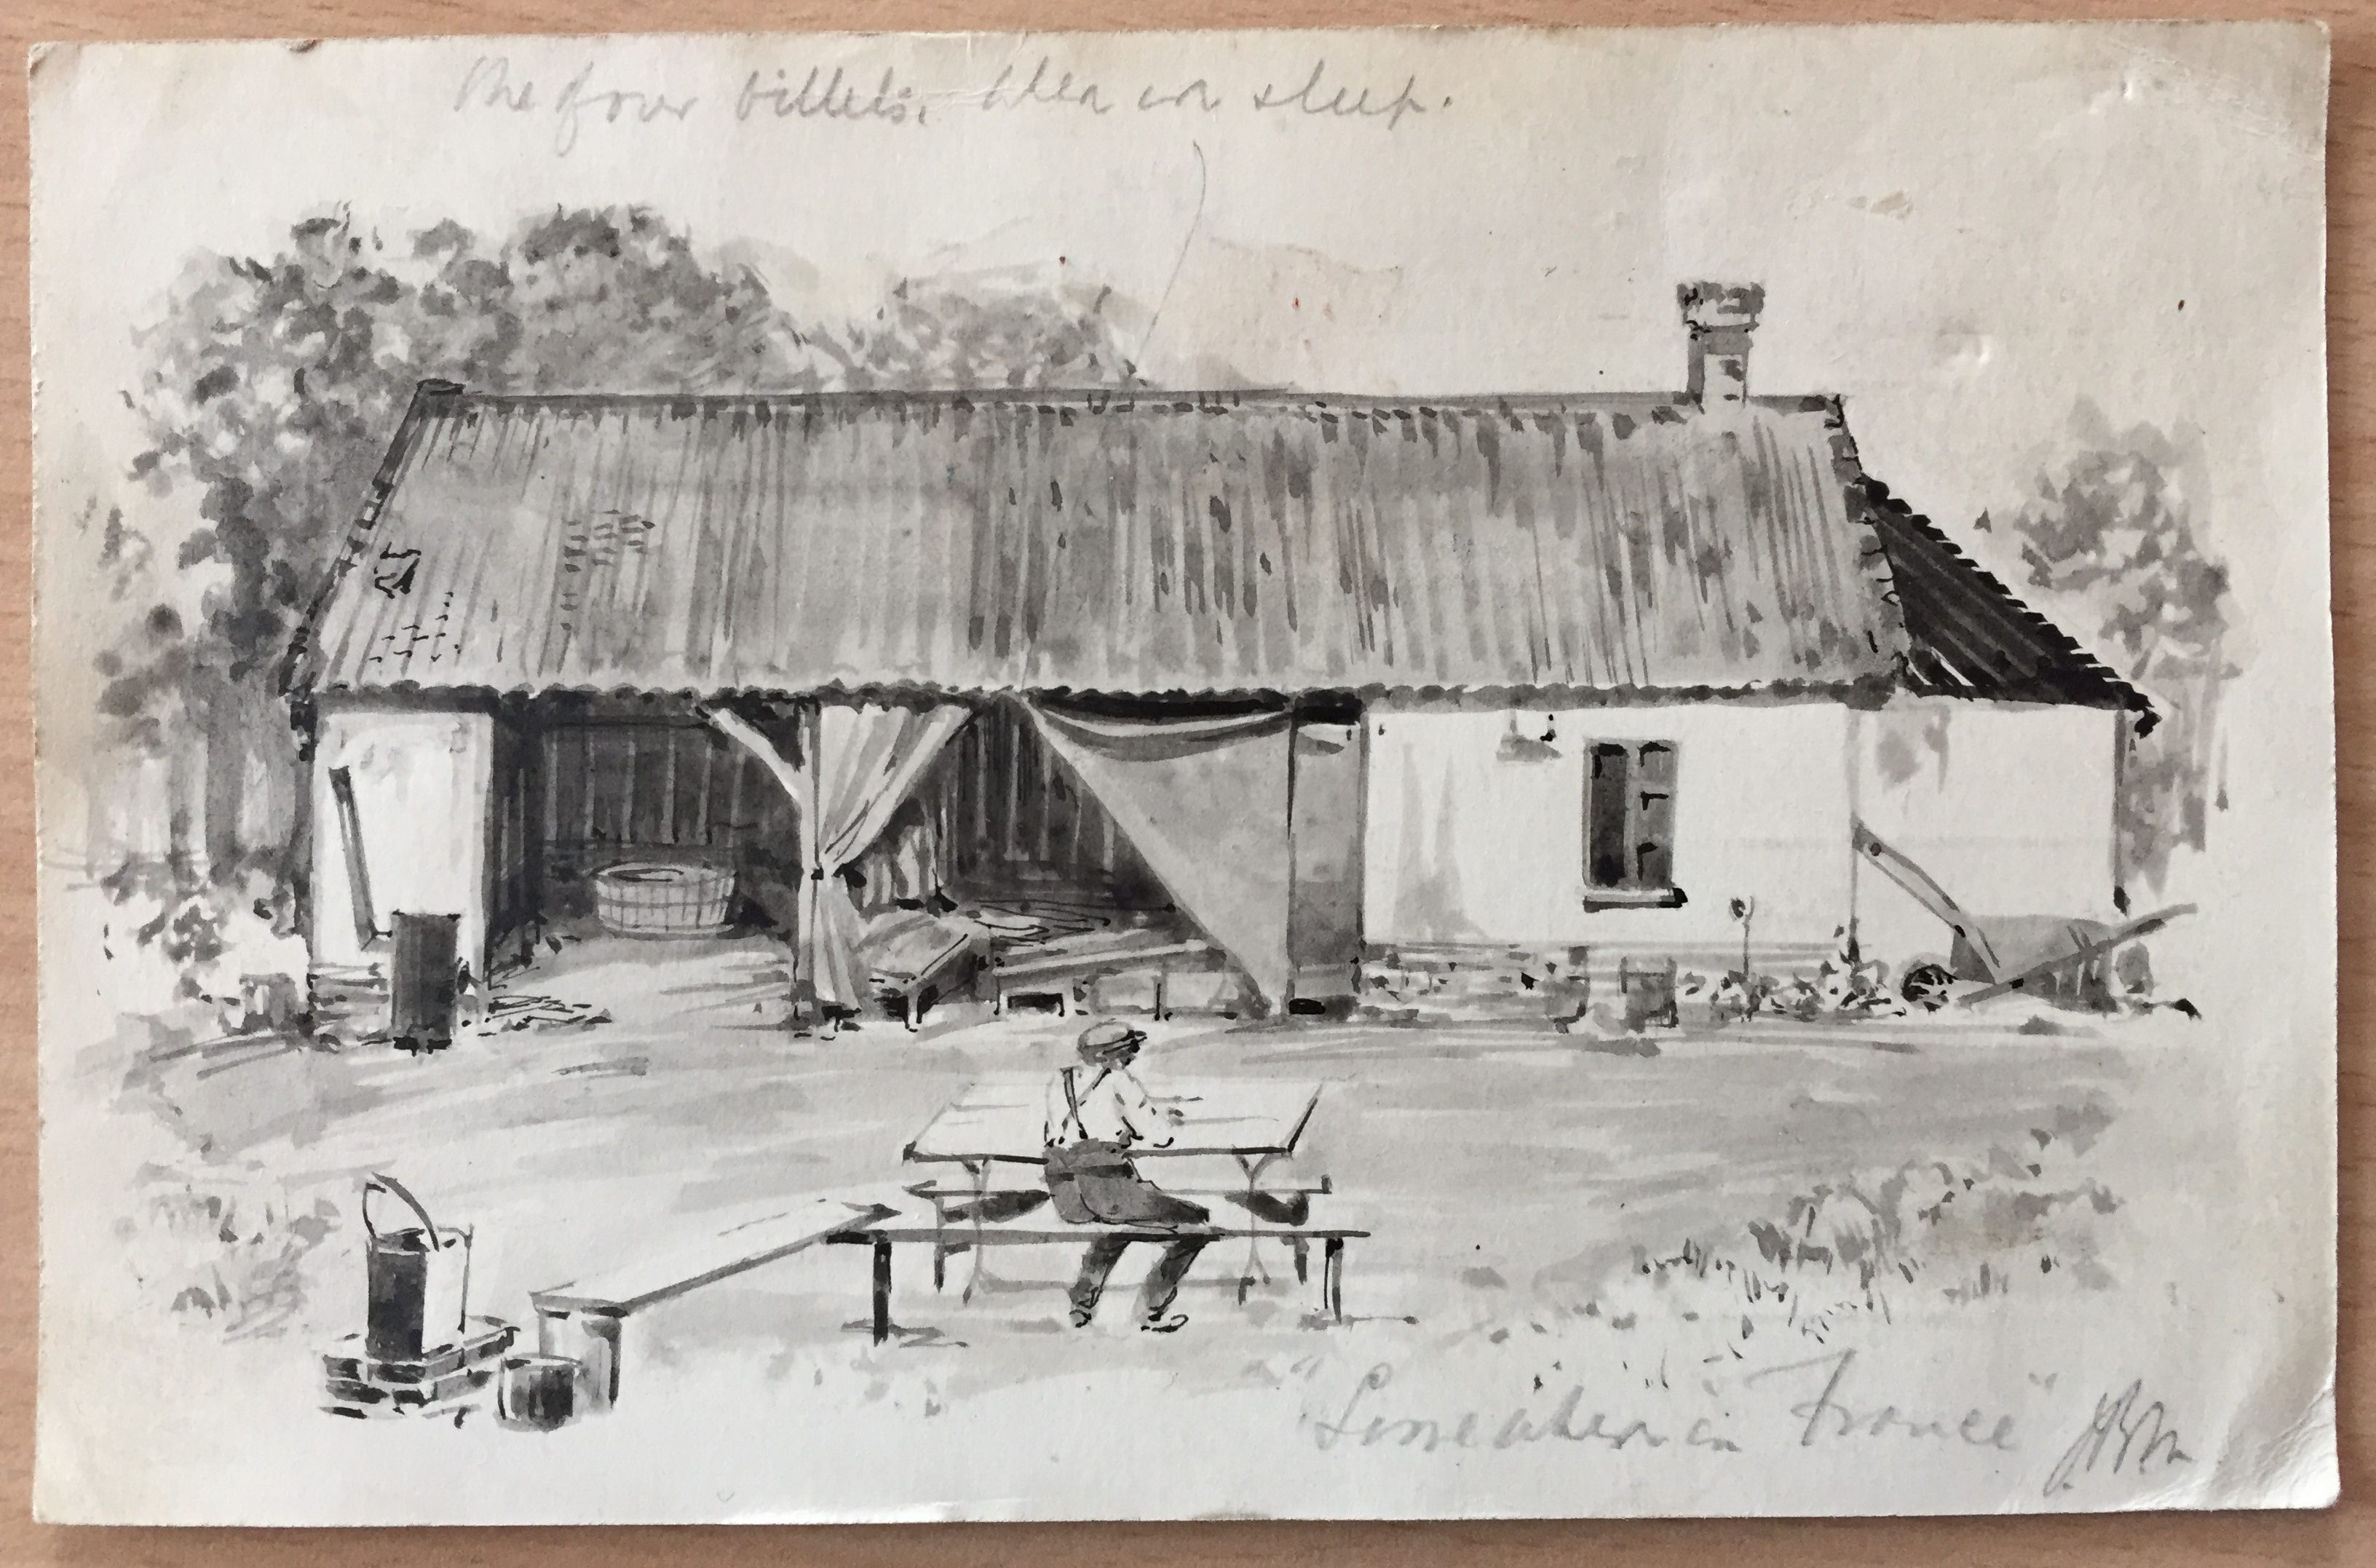 Watercolour of a barn from the great war